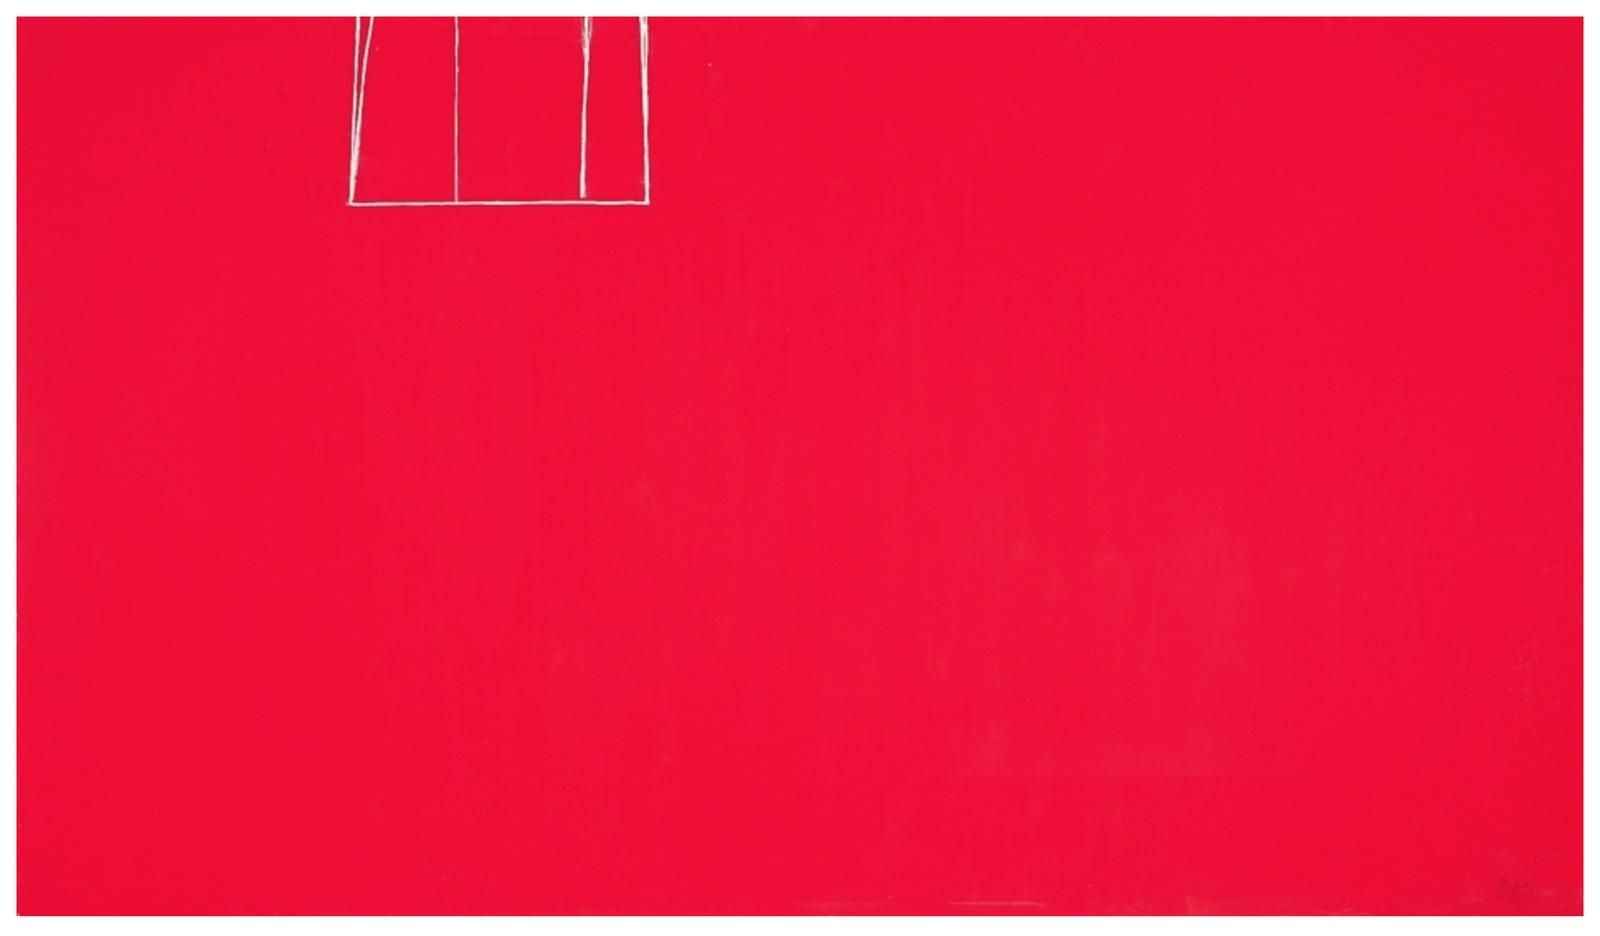 Robert Motherwell Open No. 153: In Scarlet with White Line 1970 acrylic on canvas 86 1/2 x 140 1/4 inches (219.7 x 356.2 cm)  Private collection